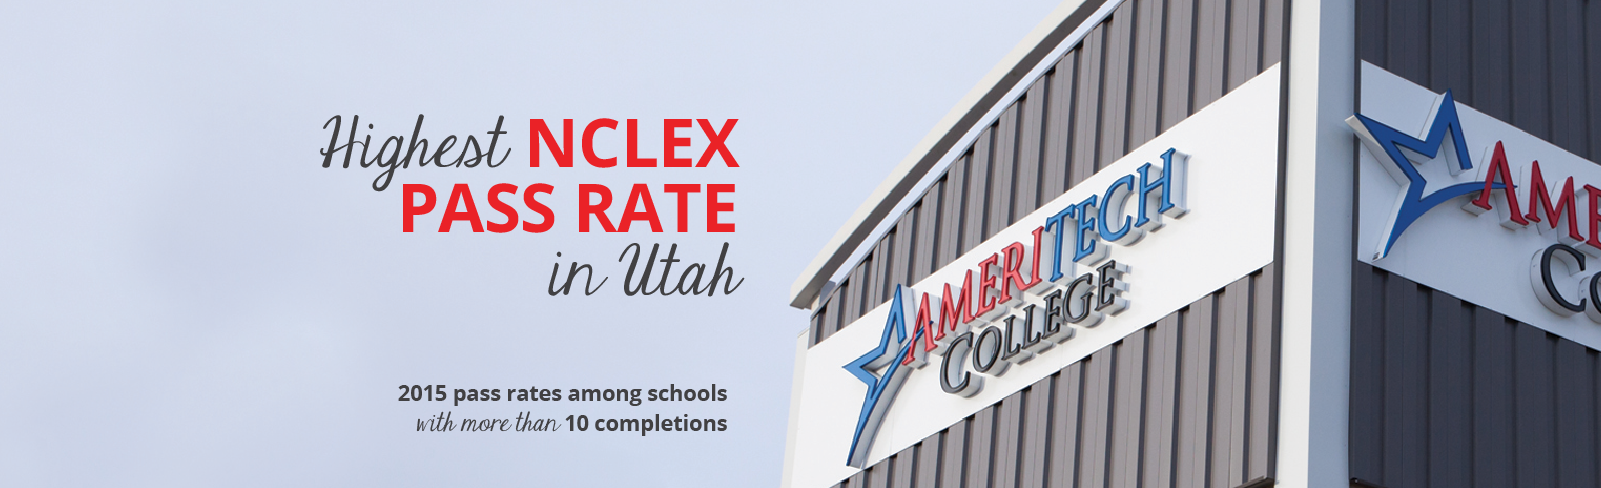 Ameritech College of Healthcare RN Program NCLEX Pass Rates